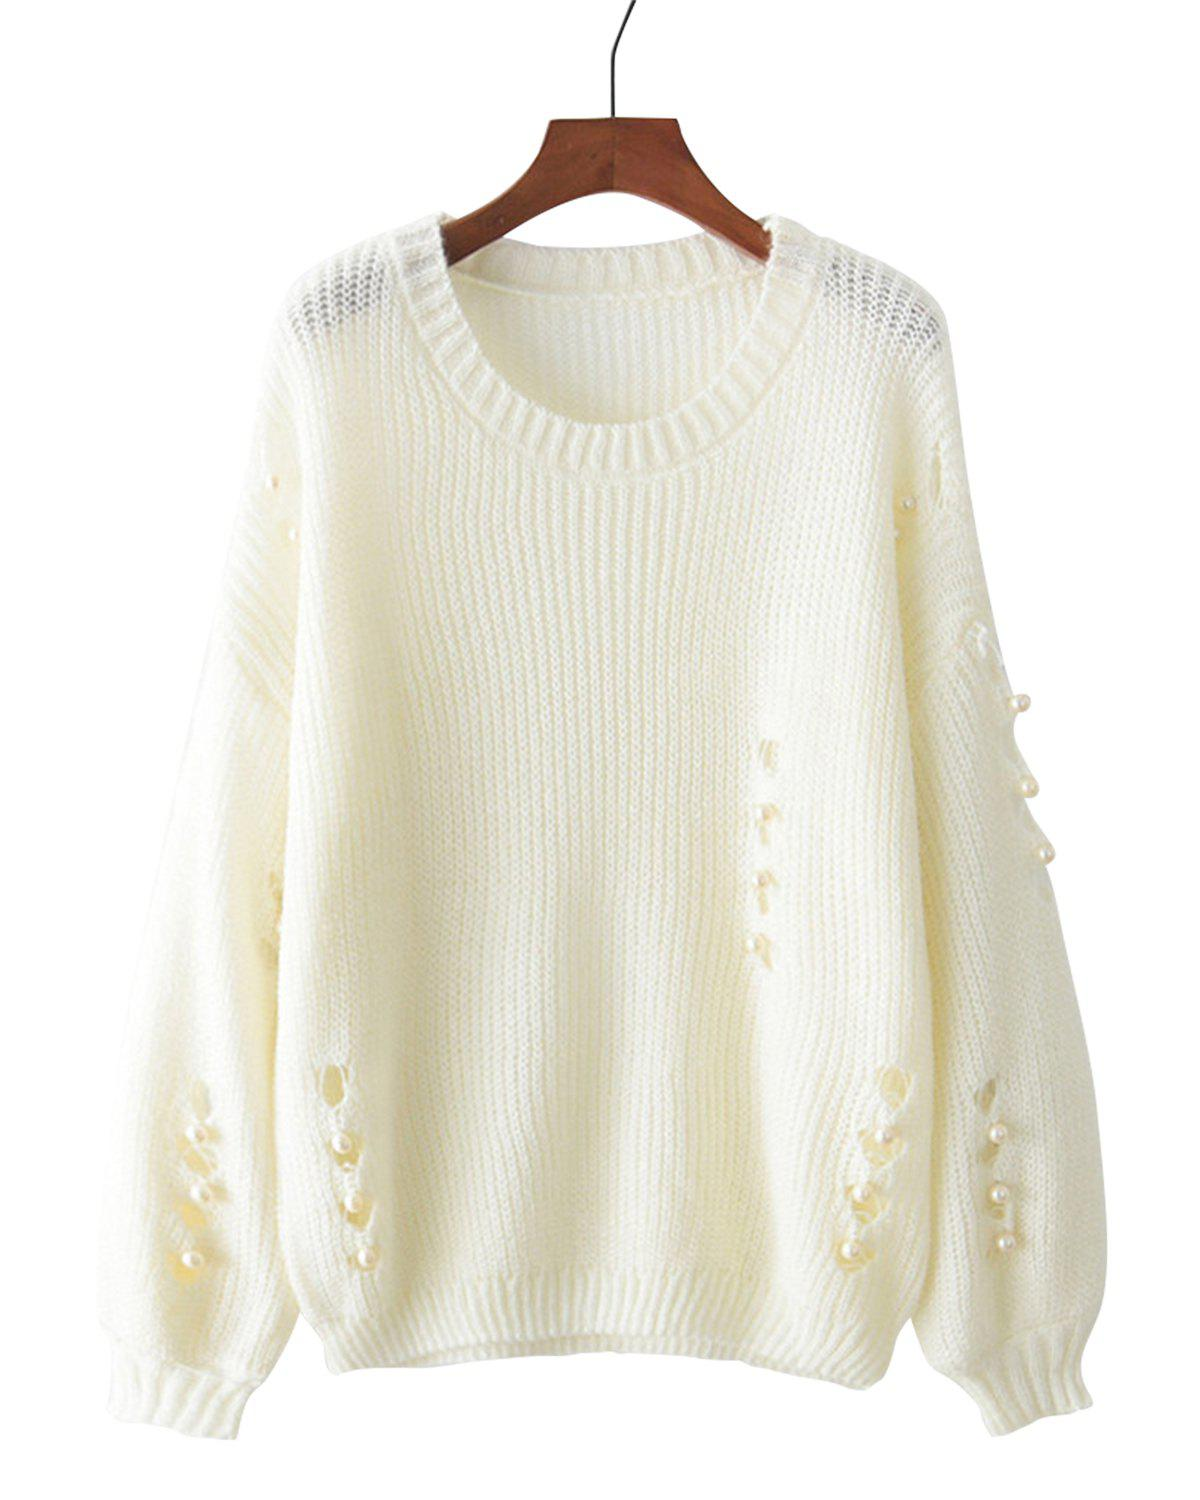 Pearl Holes Sweater - BEIGE